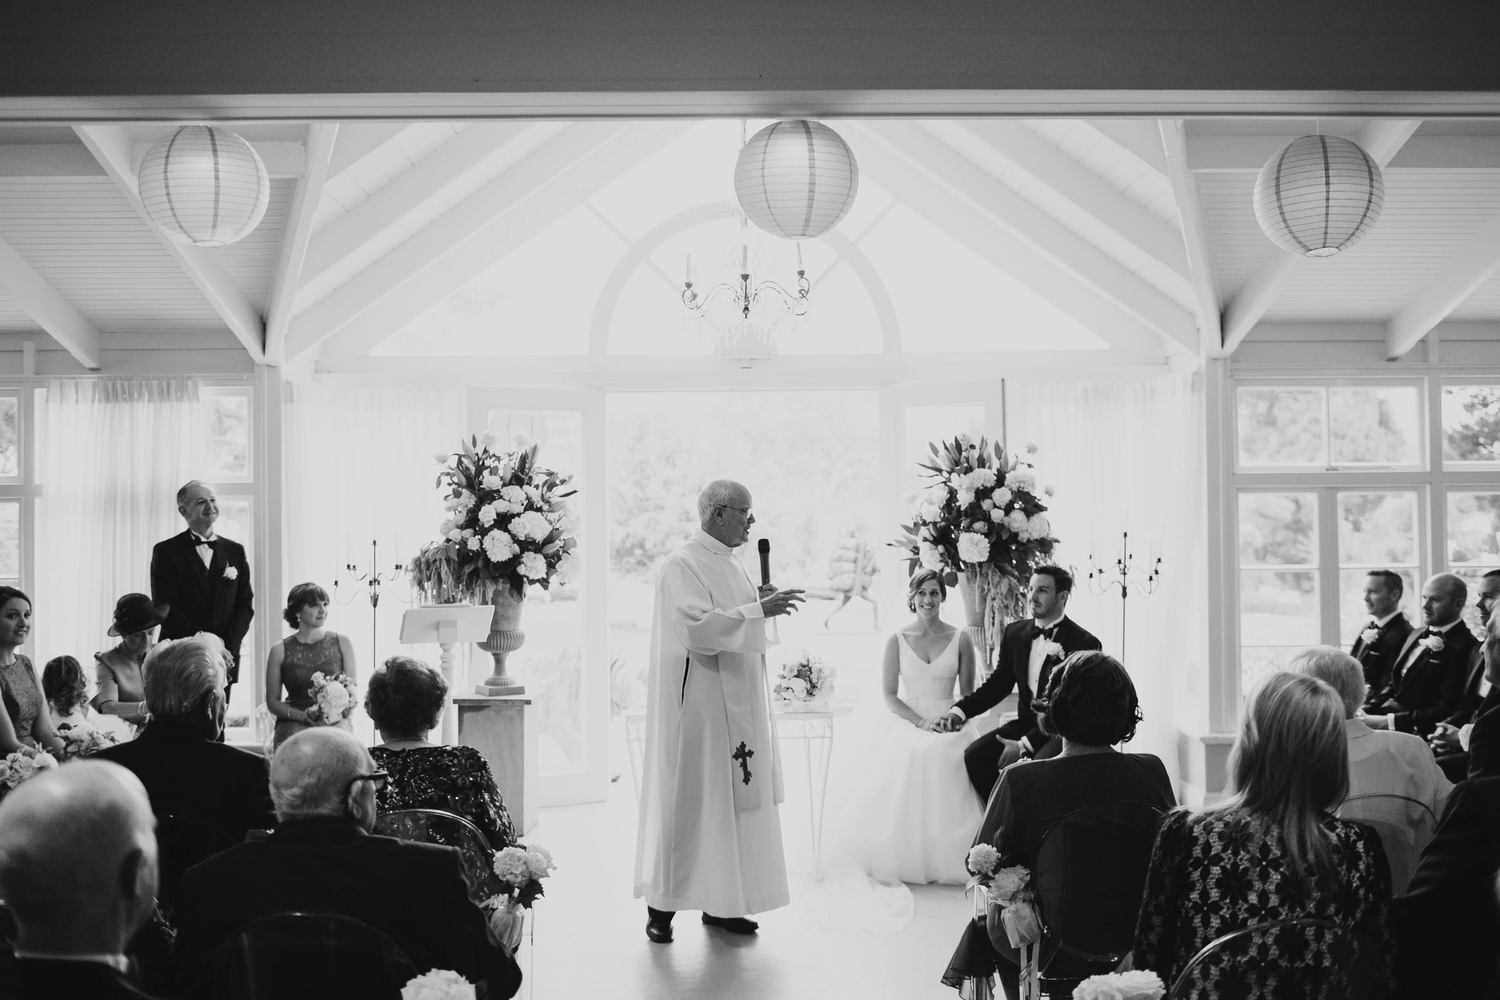 Justin Aaron Photography - Elizabeth & Damien  - Hopewood House - Wedding Gallery - Pavilion Downstairs Ballroom - Indoor Chapel - Ceremony Couple.jpeg